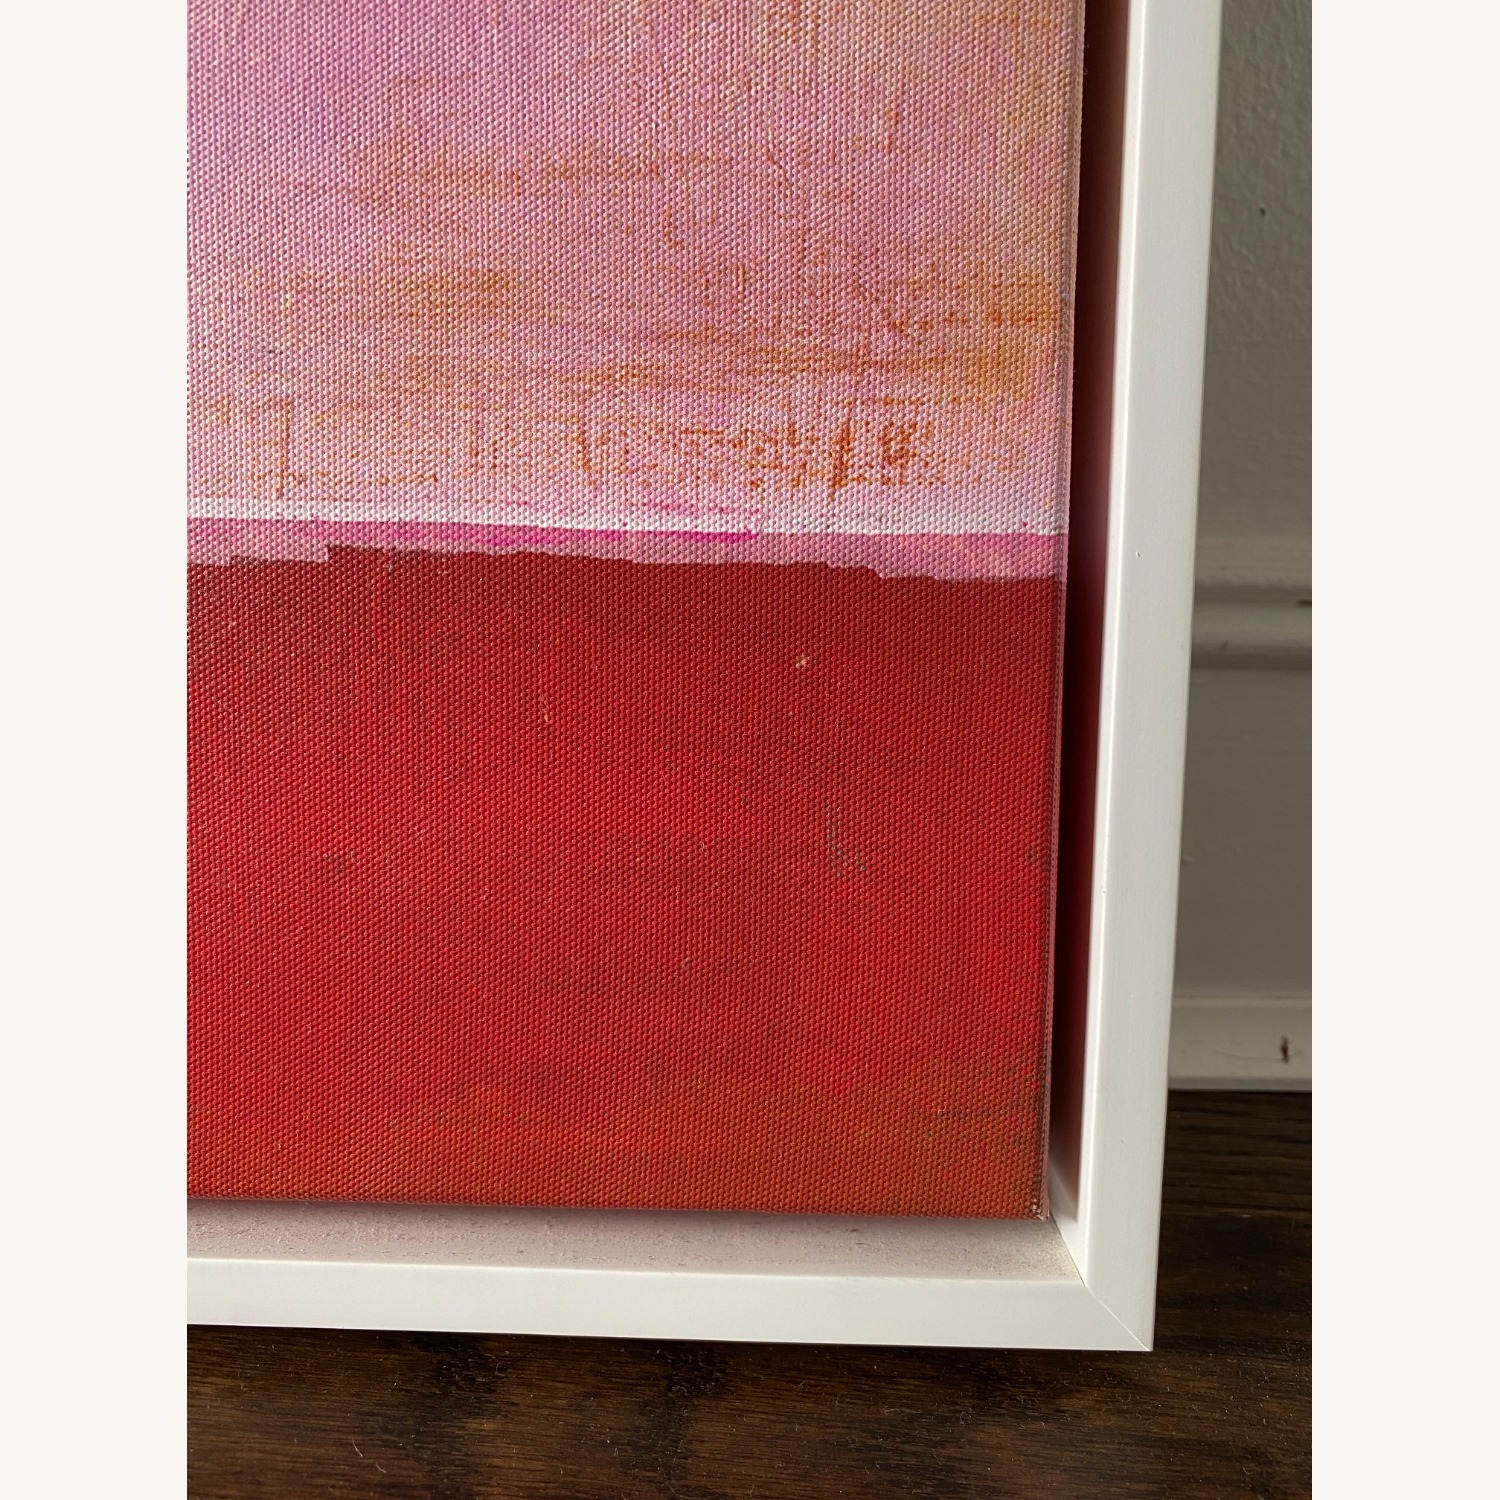 West Elm Red on Pink by Laura Gunn 24 x 24 - image-5